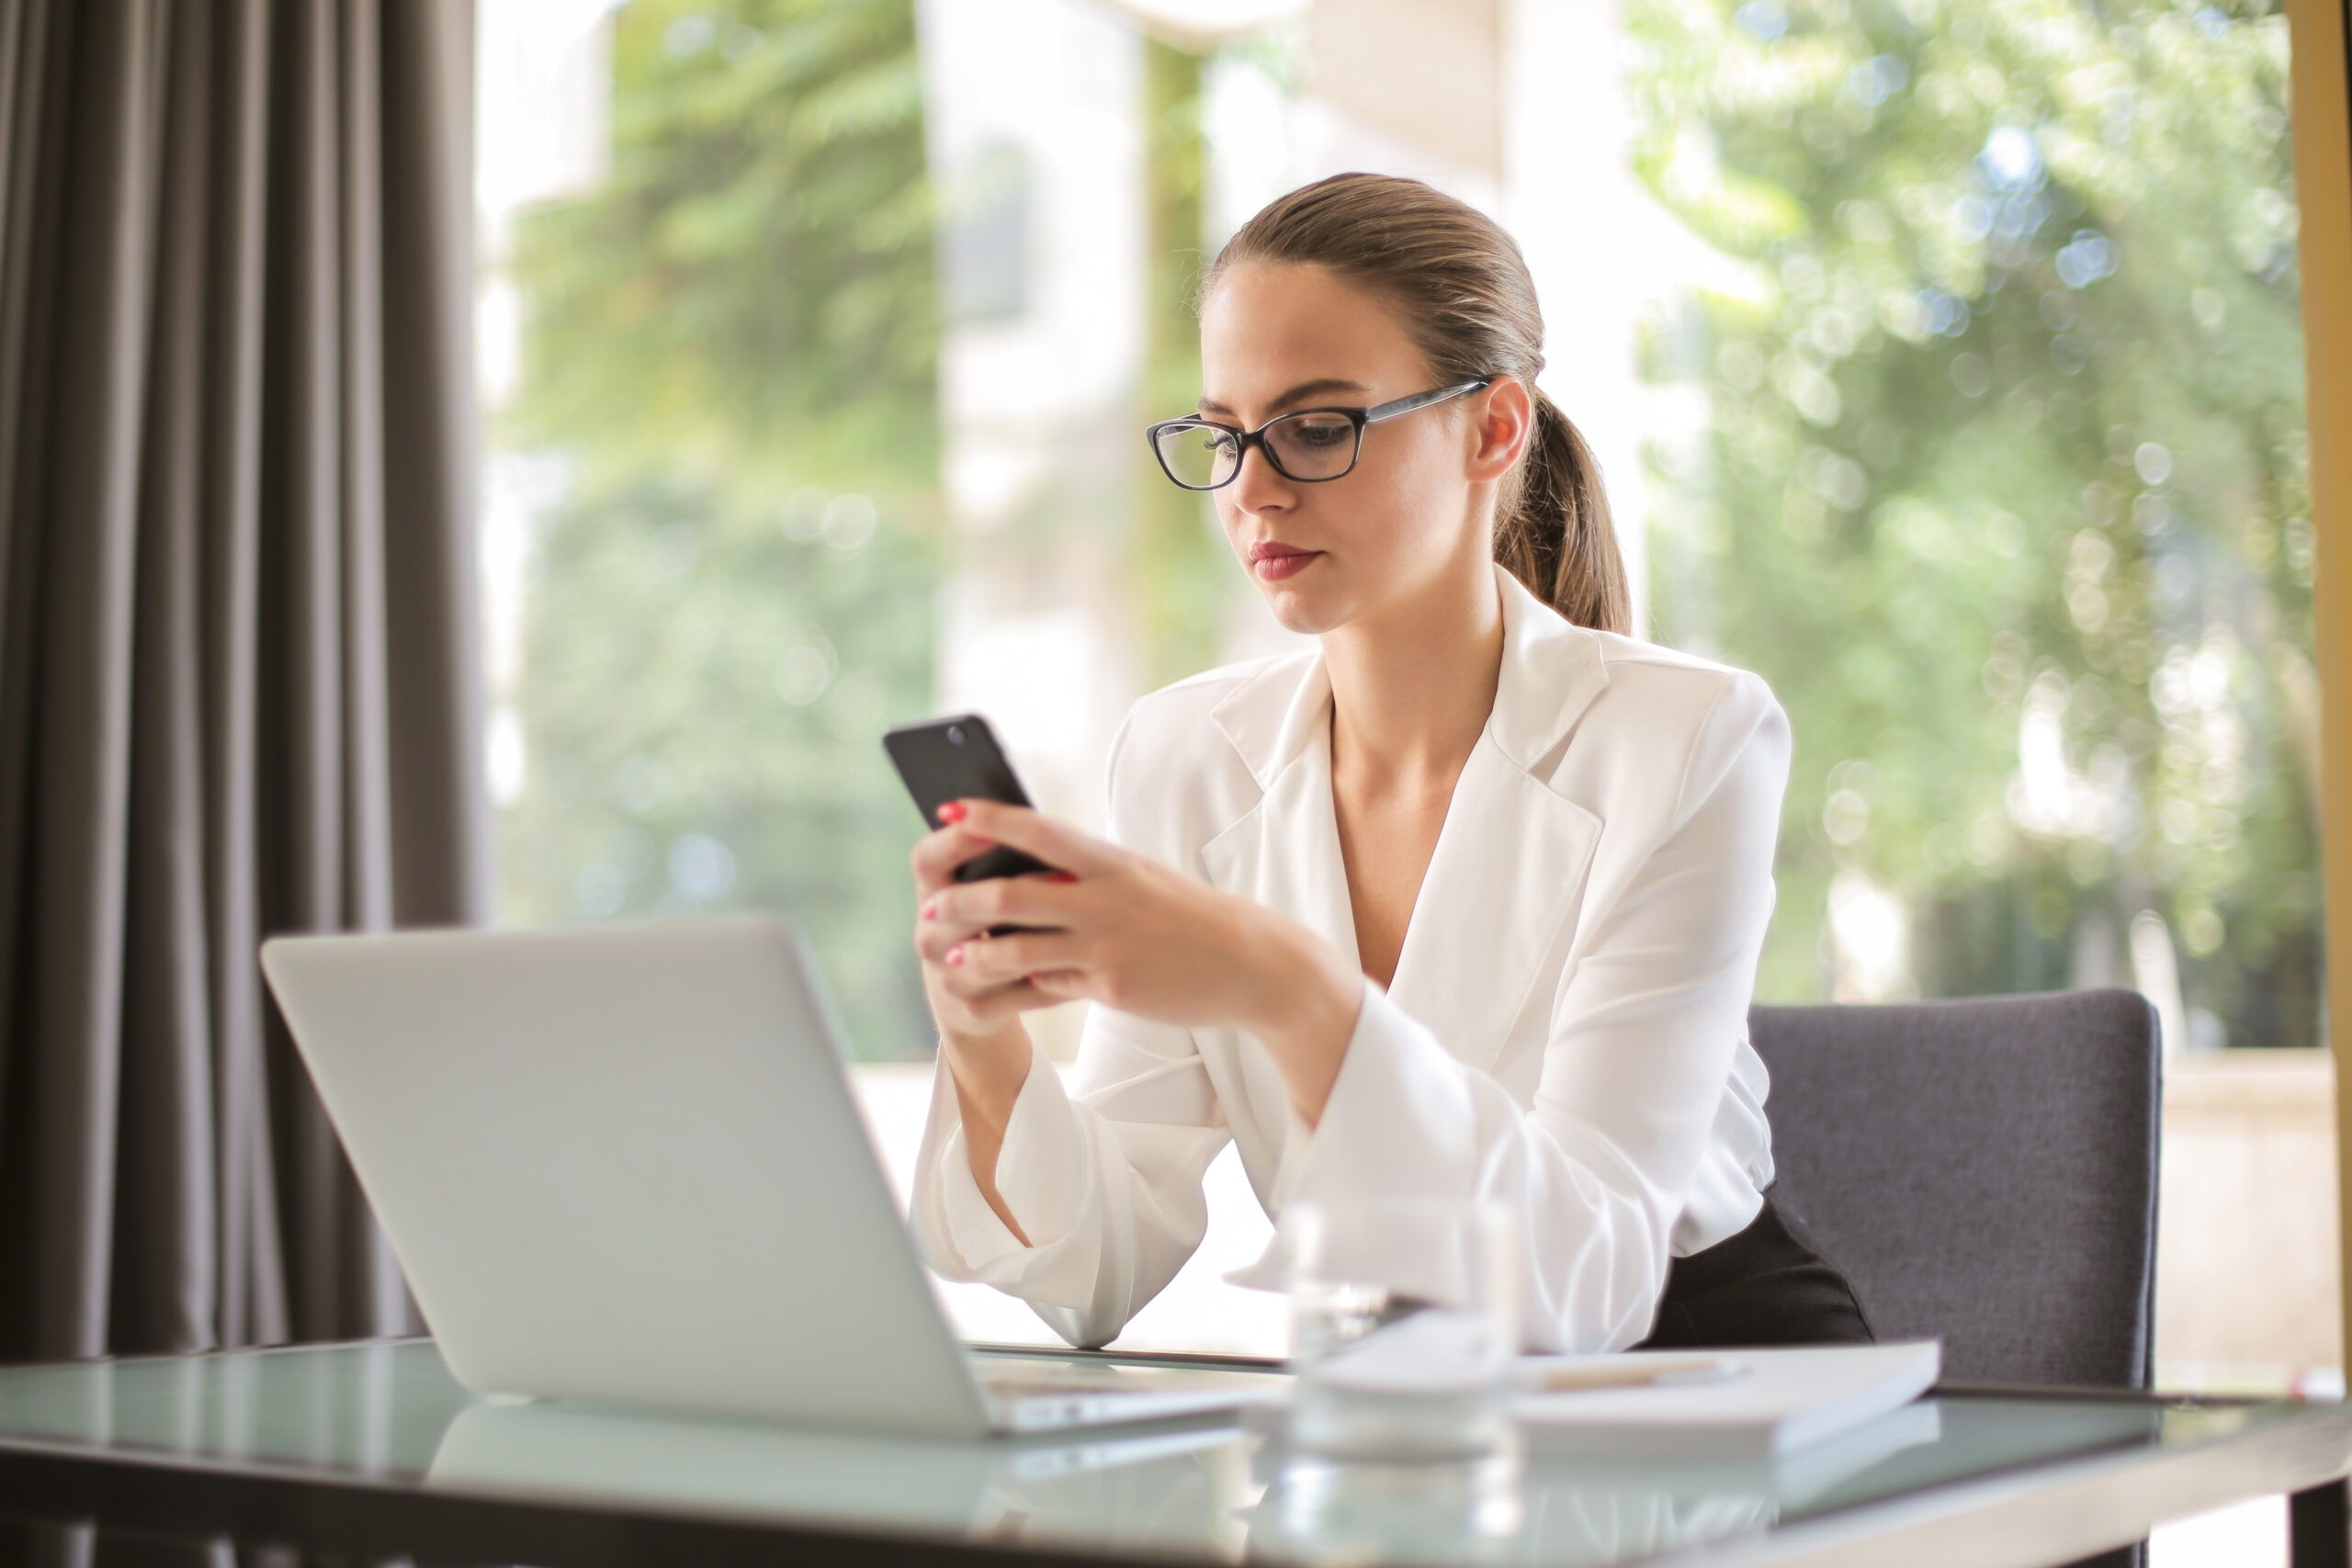 serious businesswoman using smartphone in workplace 3761520 scaled